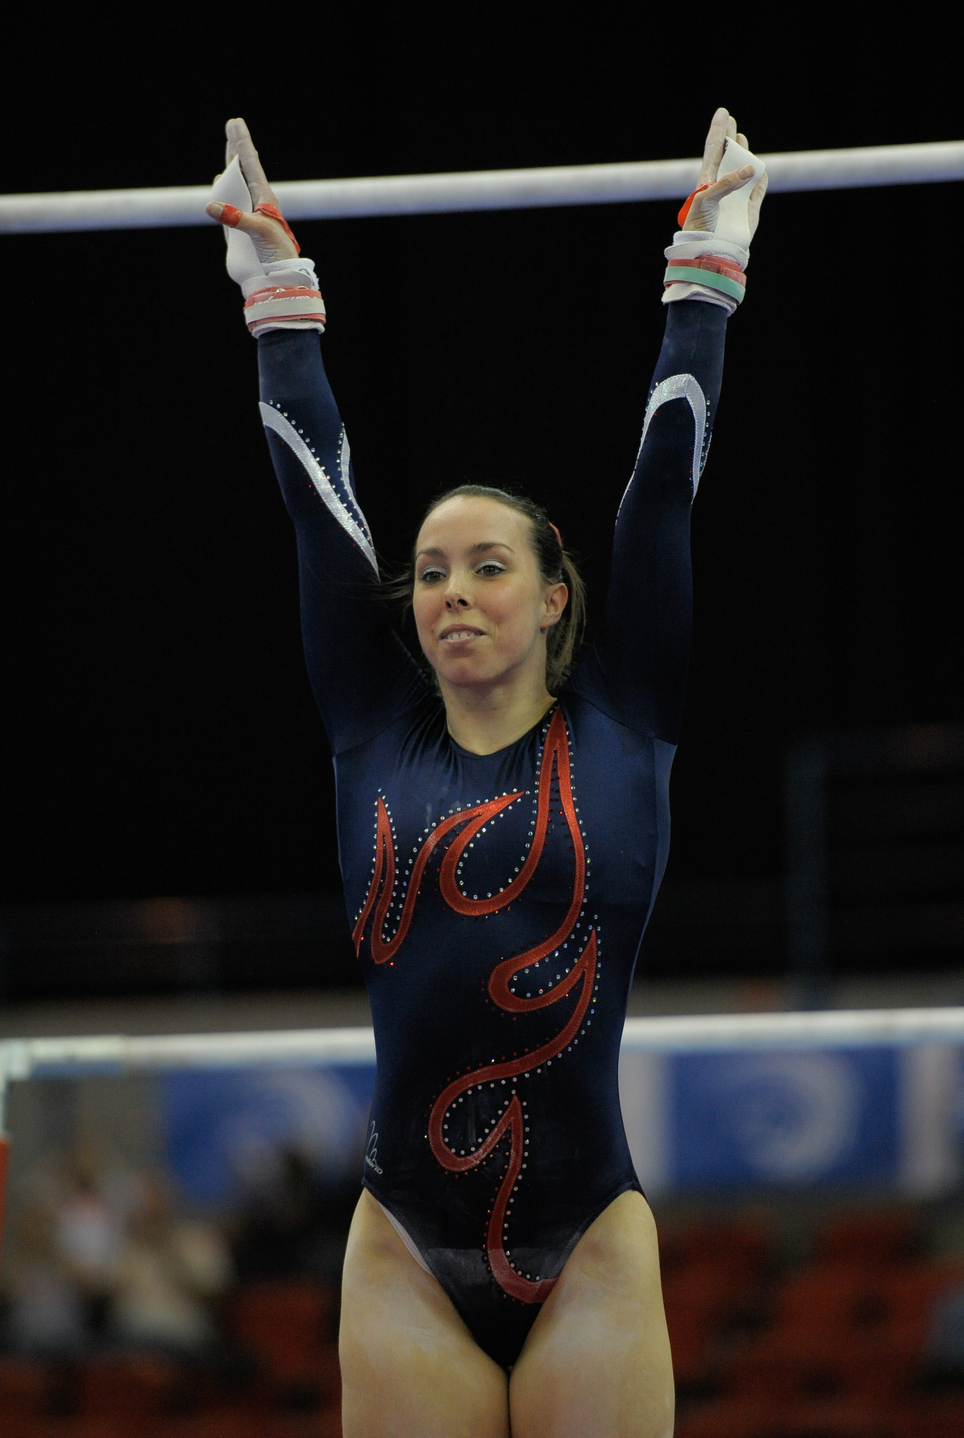 Beth_tweddle_alan_edwards_2